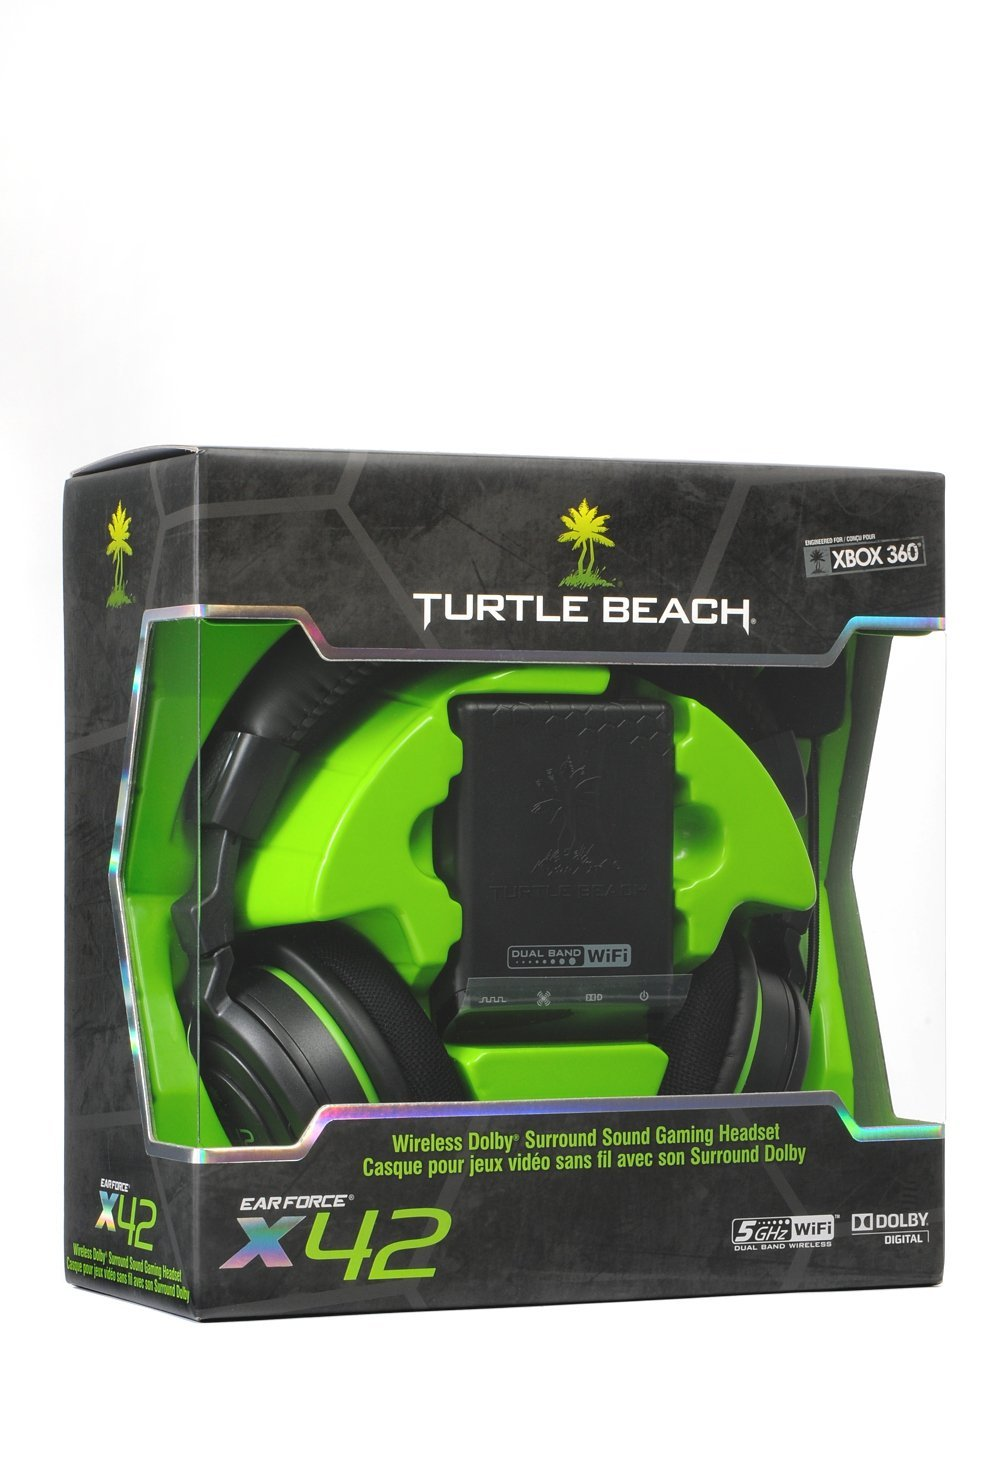 Ps Wh additionally Turtle Beach Ear Force X additionally S L further Ltz Ps Wgwz furthermore . on x41 turtle beach headset xbox 360